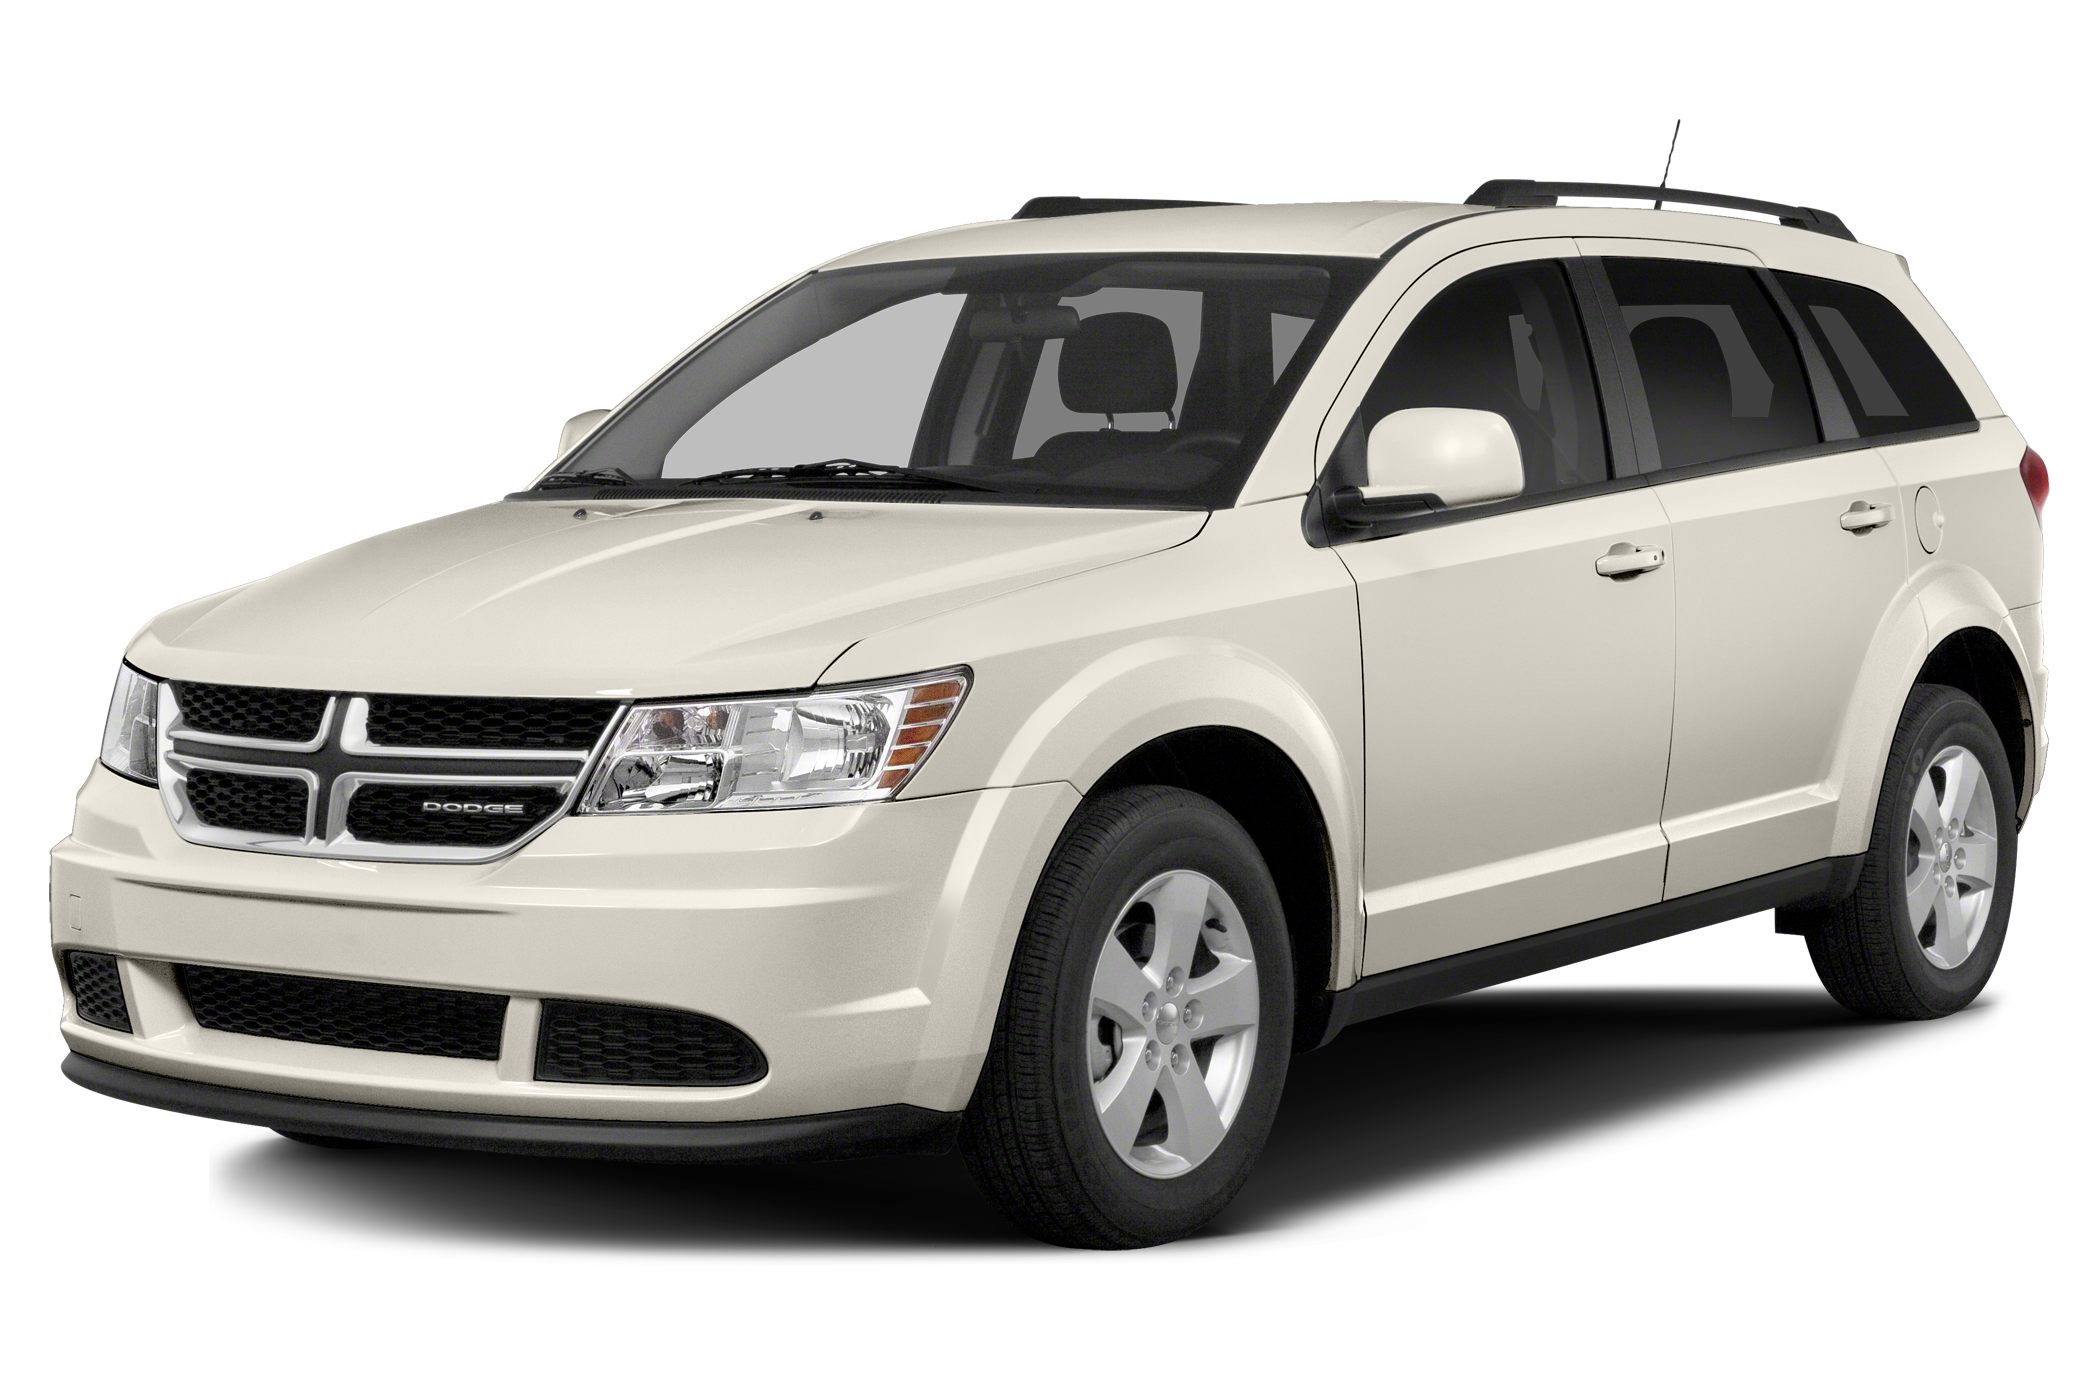 2015 Dodge Journey Limited SUV for sale in Gaithersburg for $29,872 with 0 miles.